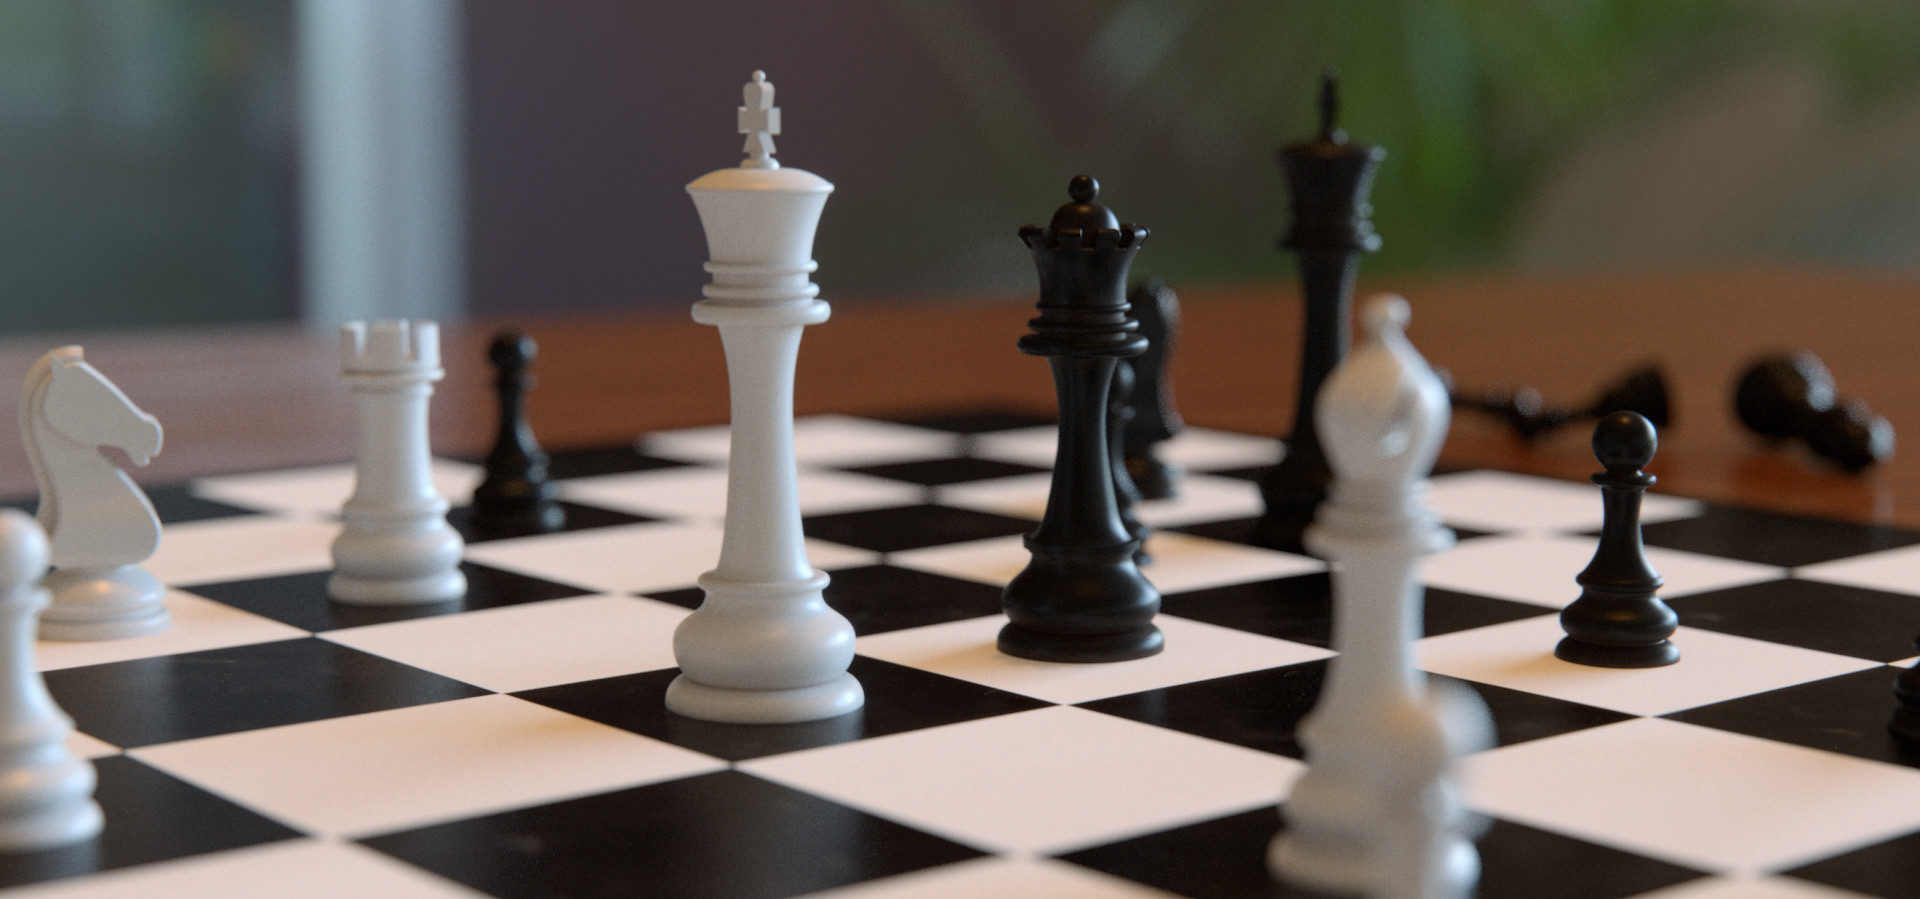 a game of chess Play, learn and have fun with the most advanced free online chess game improve your skills with various ai opponents or challenge your friends in multiplayer.